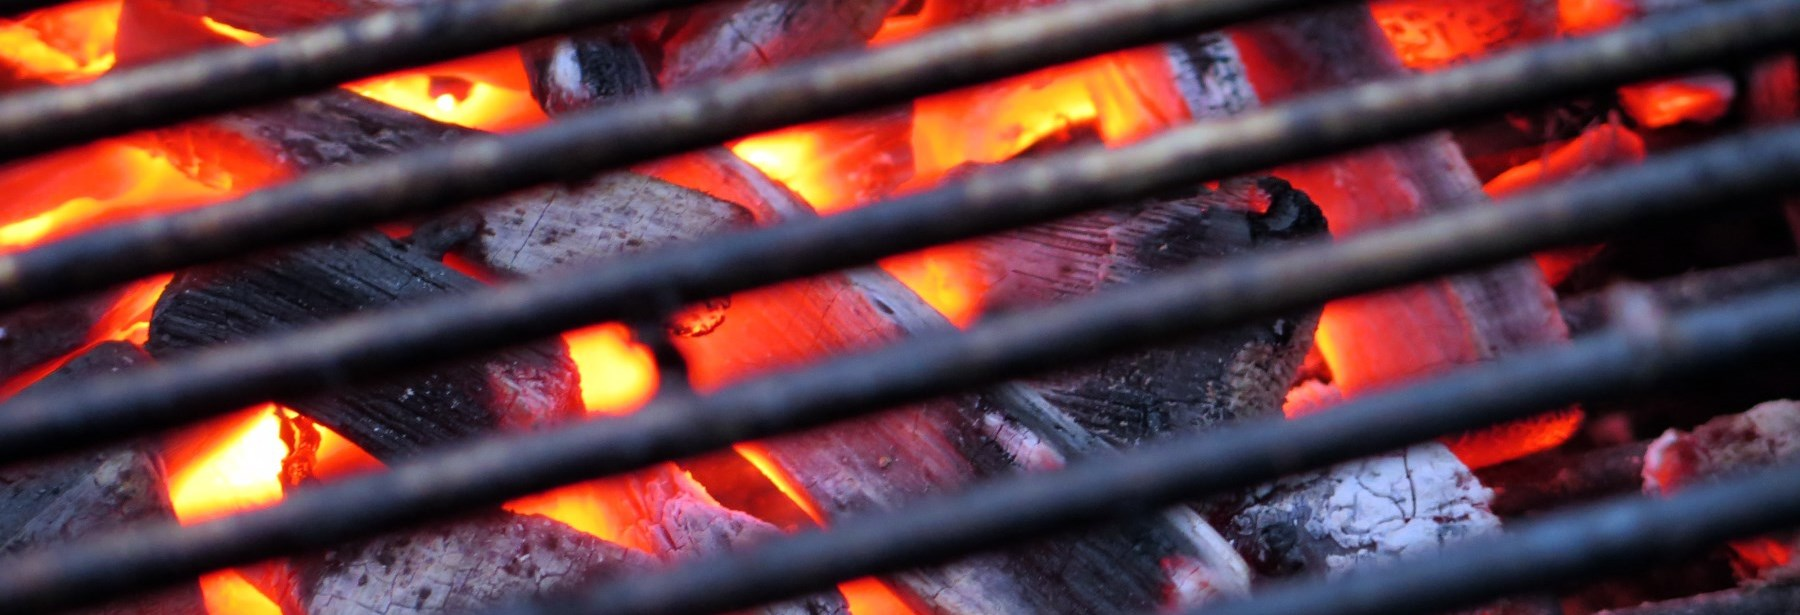 Barbeque grill showing coals and fire below